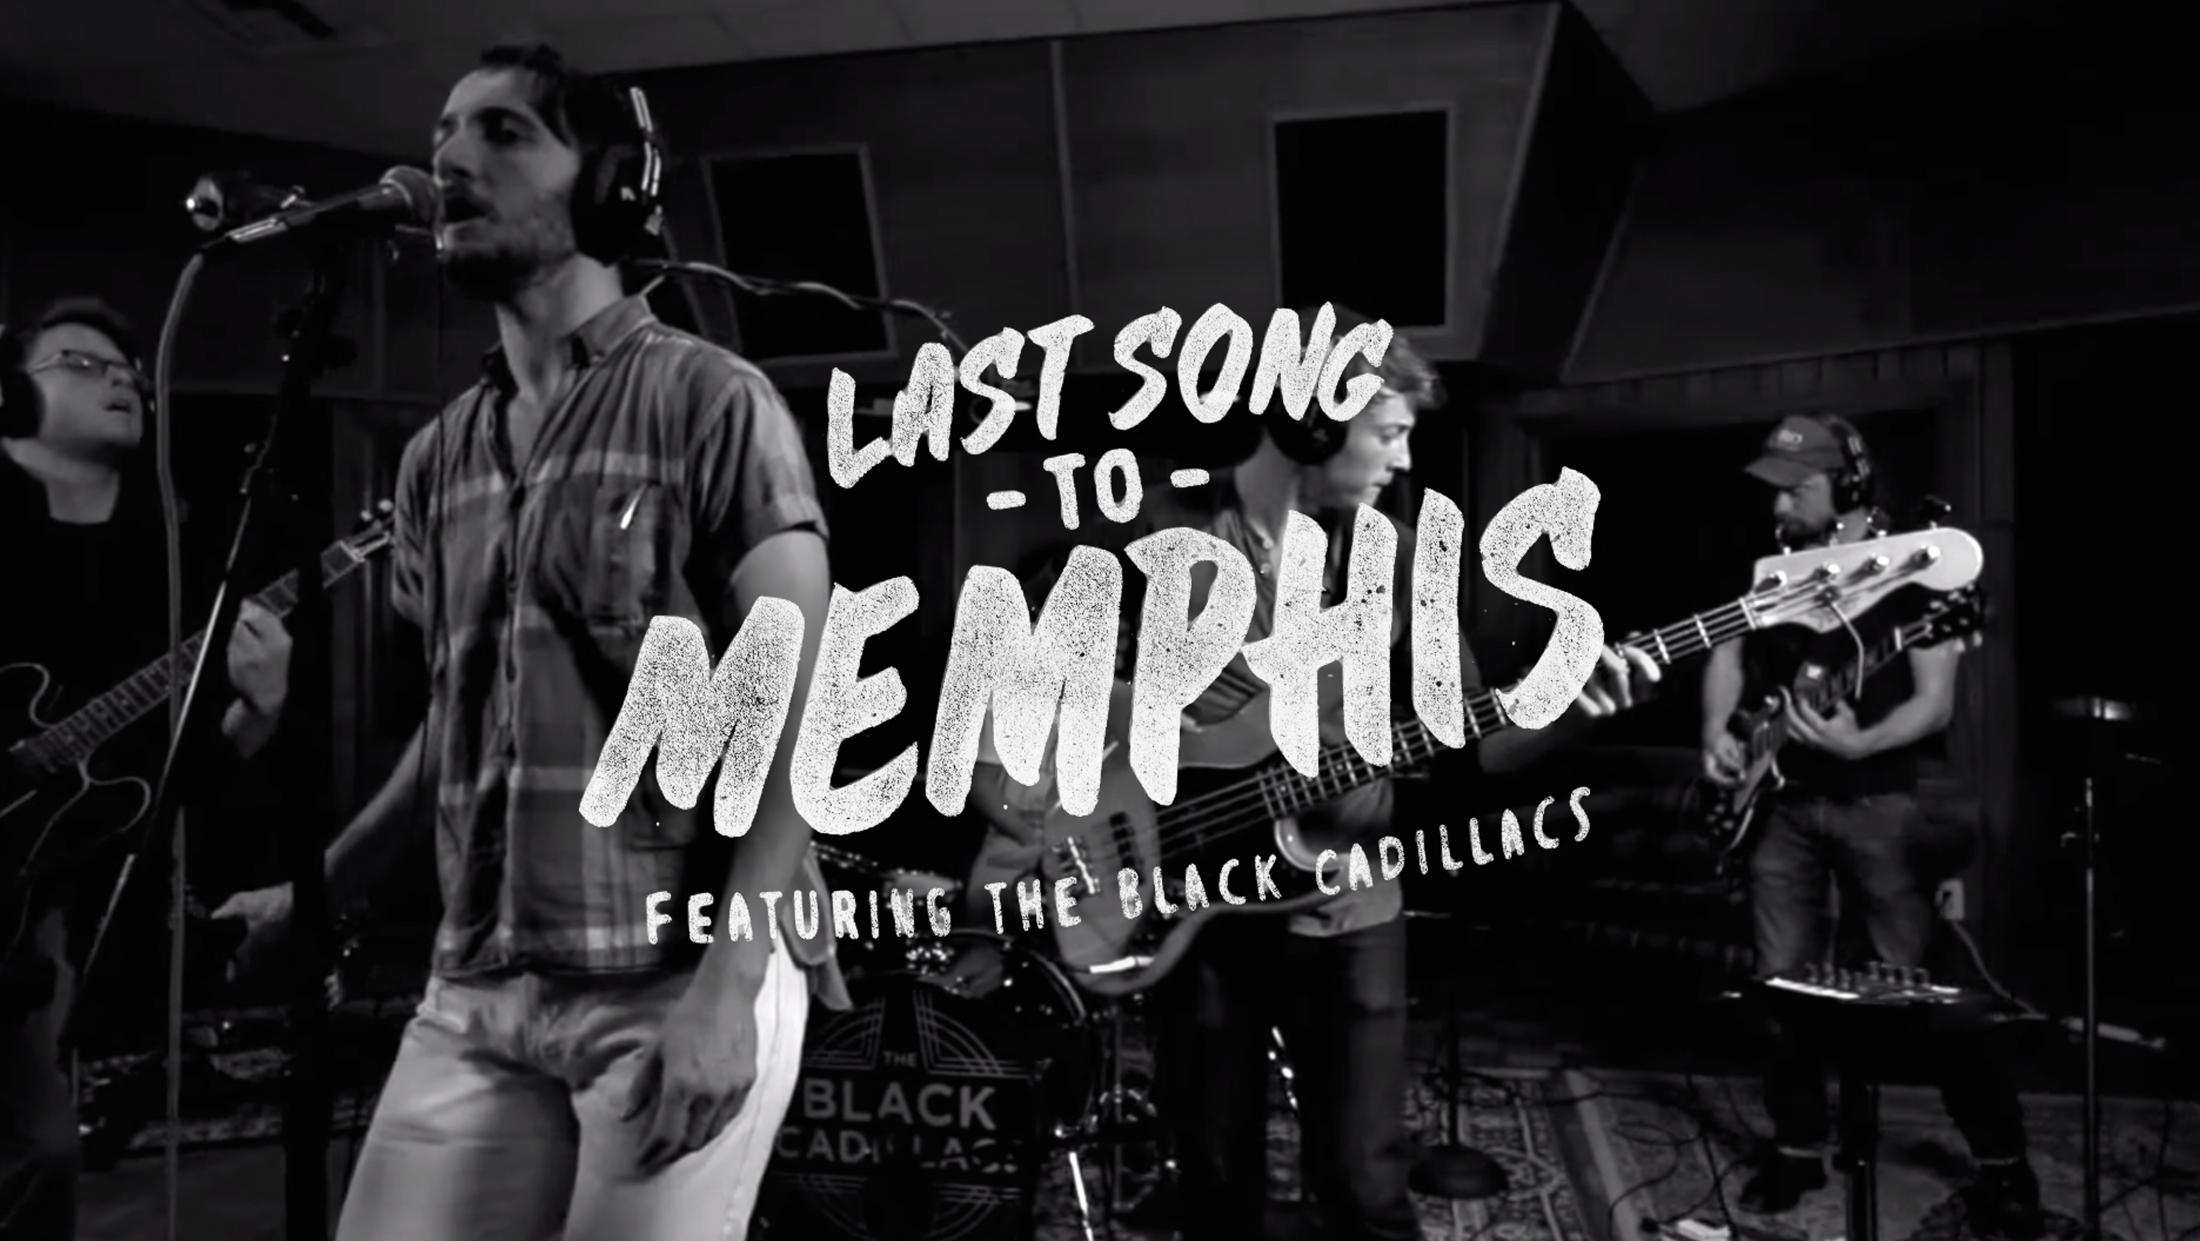 Thumbnail for Last Song to Memphis